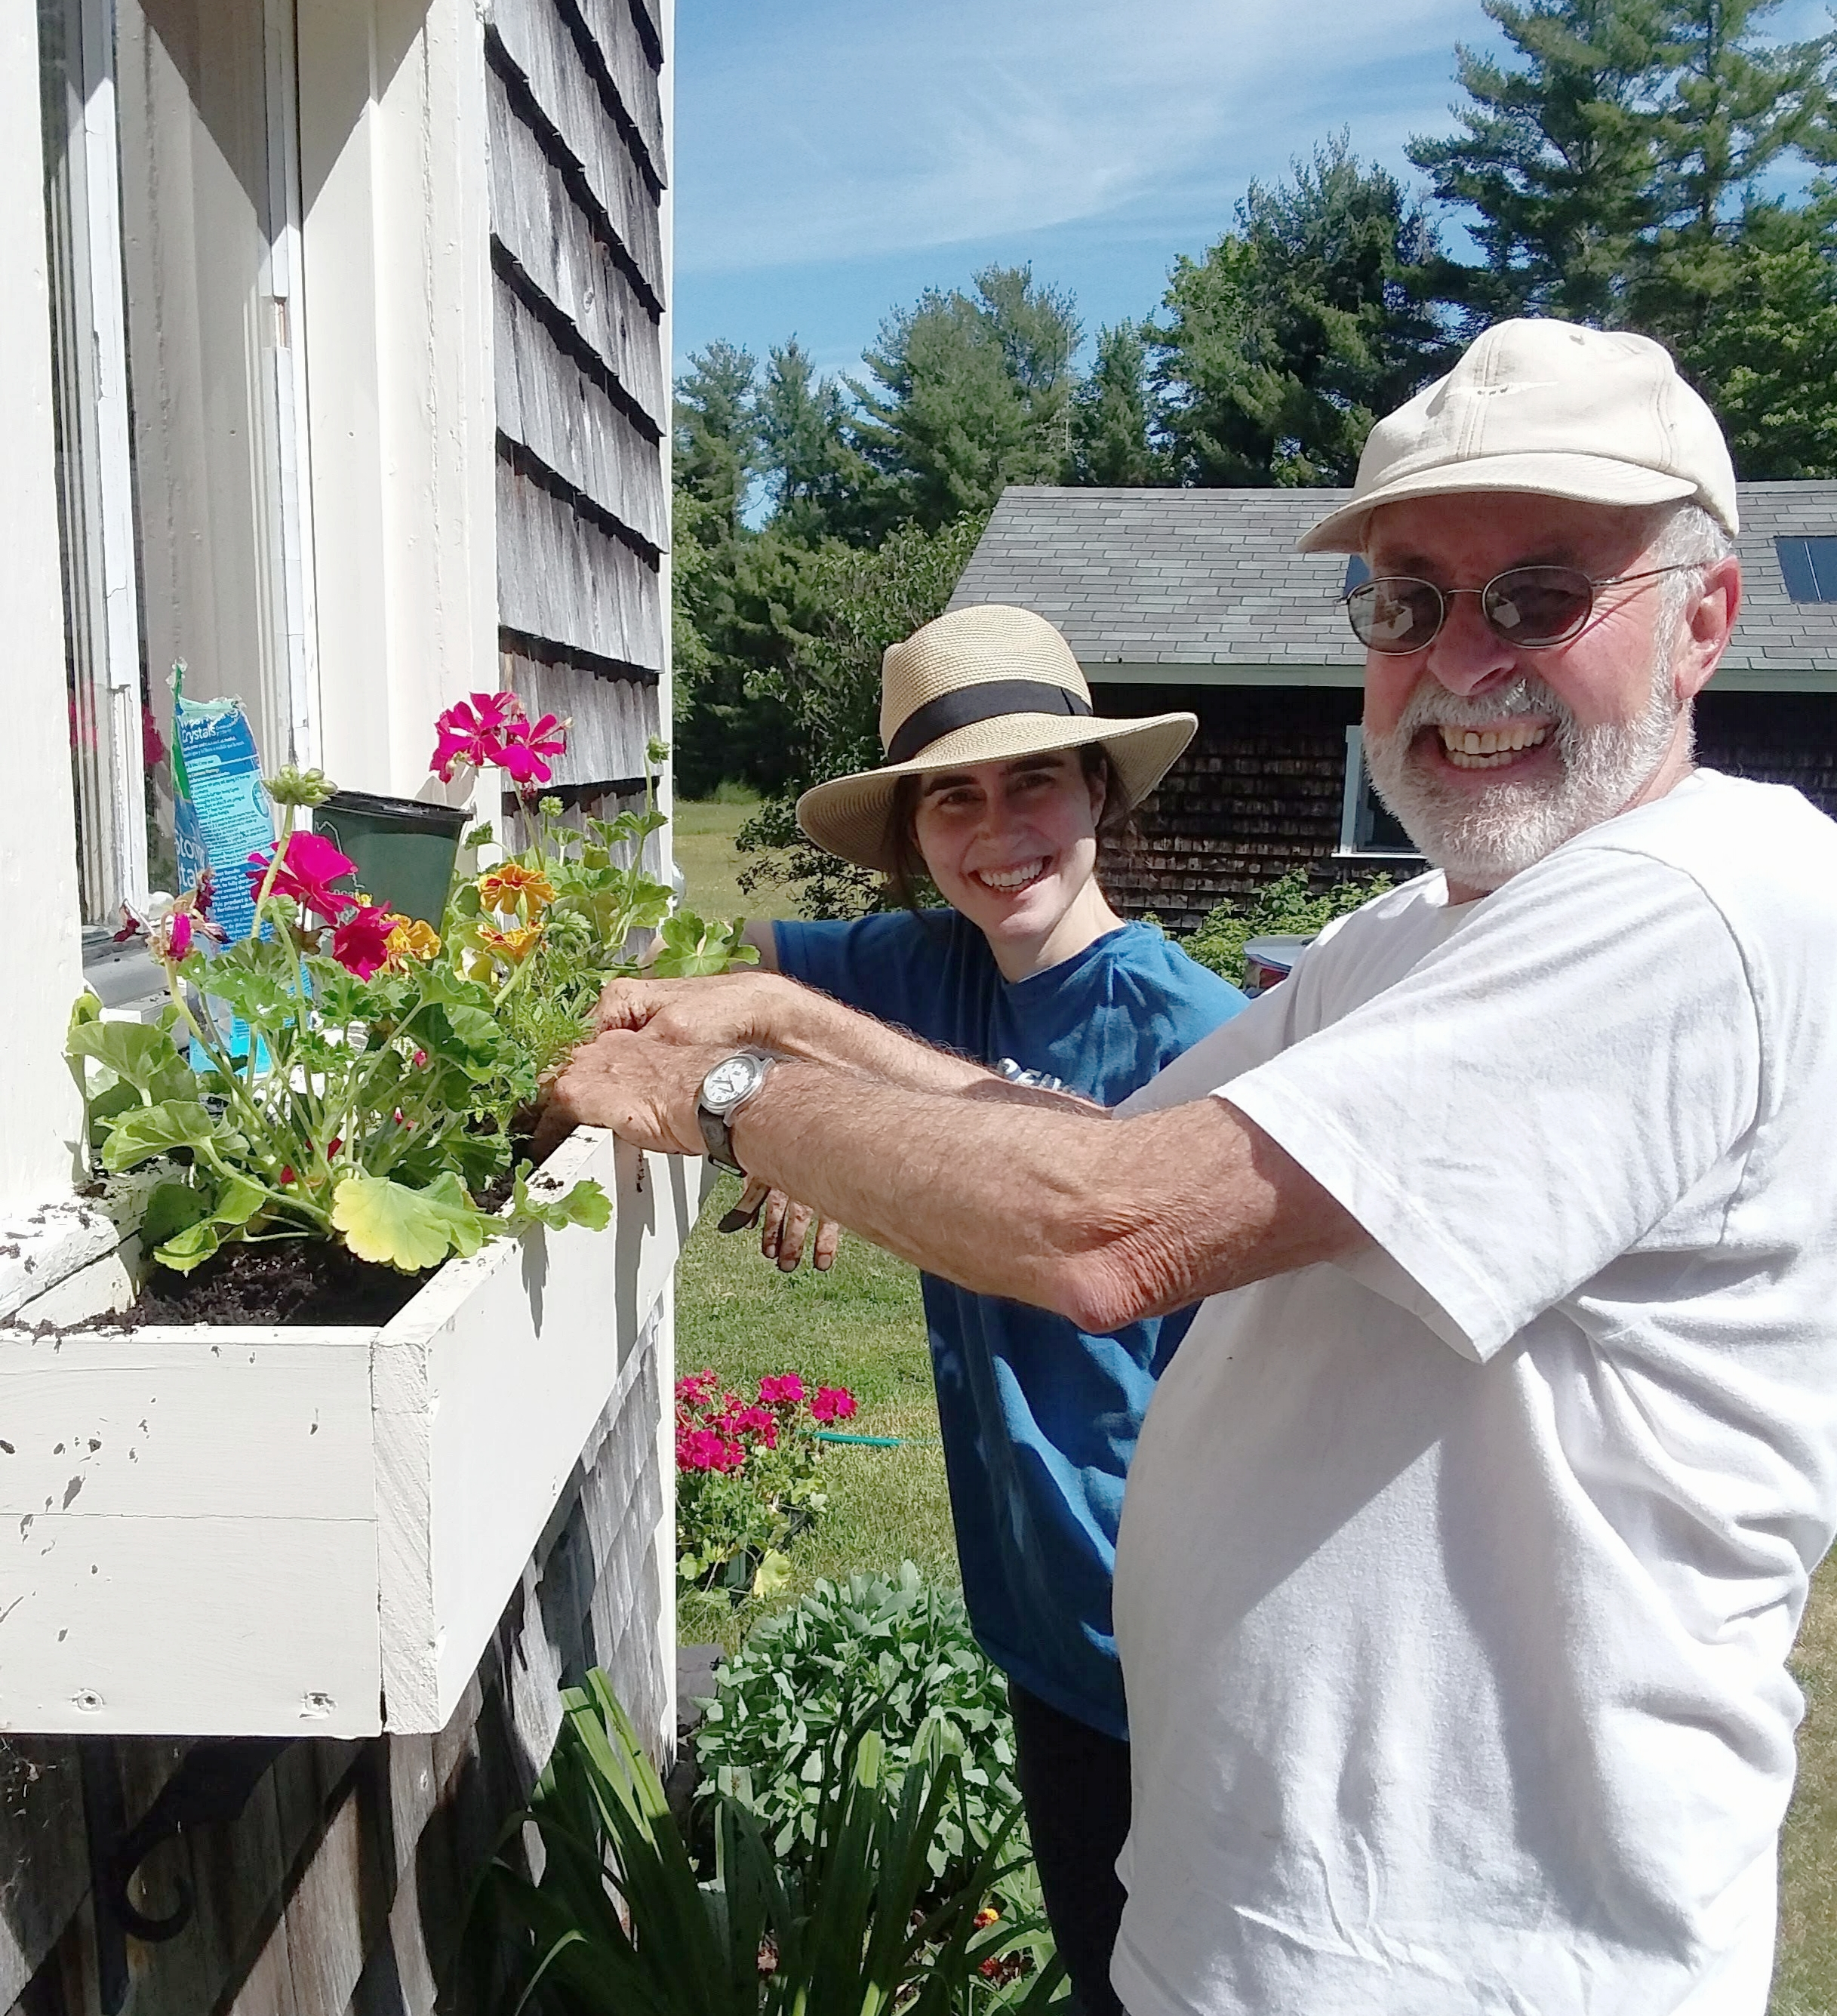 Alex and her dad  plant flowers at the family farm in Maine